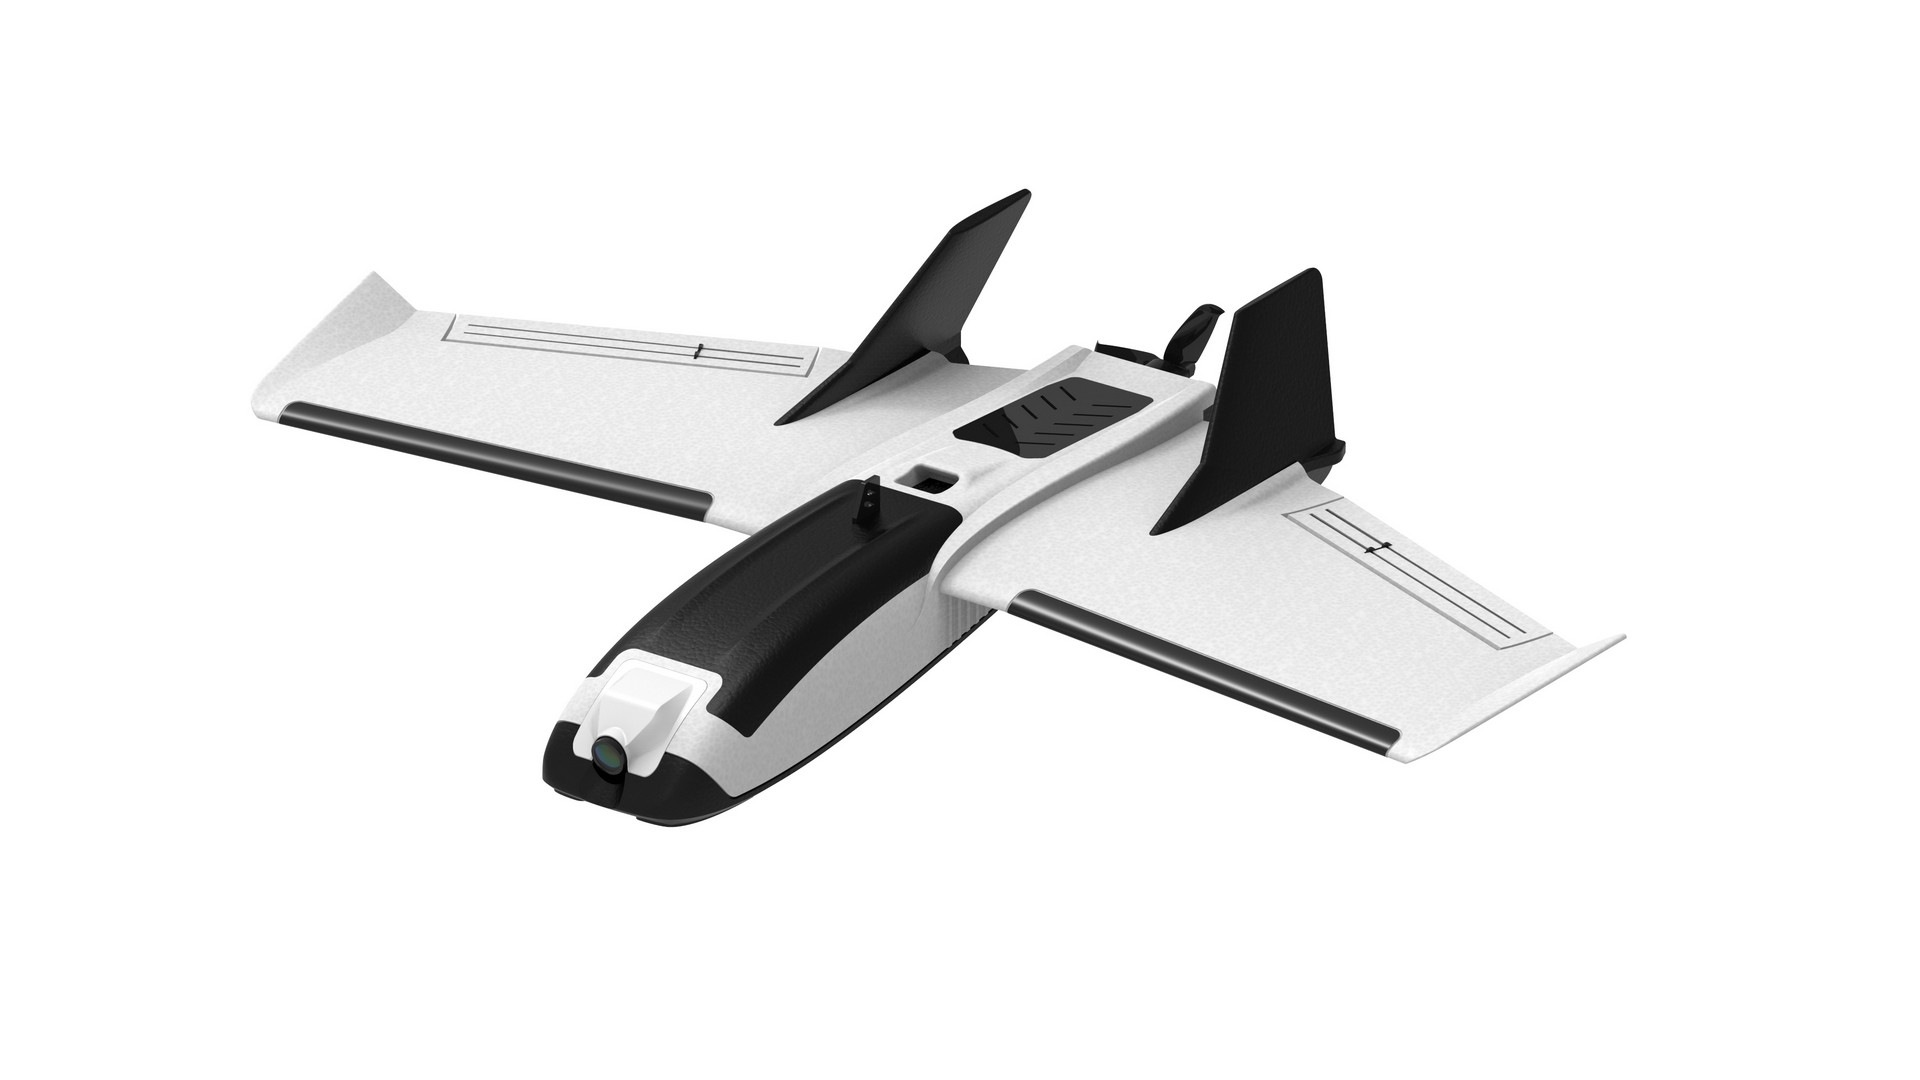 Without further ado, we have the RC Airplane Kit to Build with the lightest and smallest plane out of the three that will appear throughout this list: ZOHD Dart250G 570mm Wingspan Sweep Forward AIO Wing EPP FPV RC Airplane. As per the request of many users of ZOHD models, this model was created to respect 250 grams weight limit that arbitrarily seems to have been established around the world.